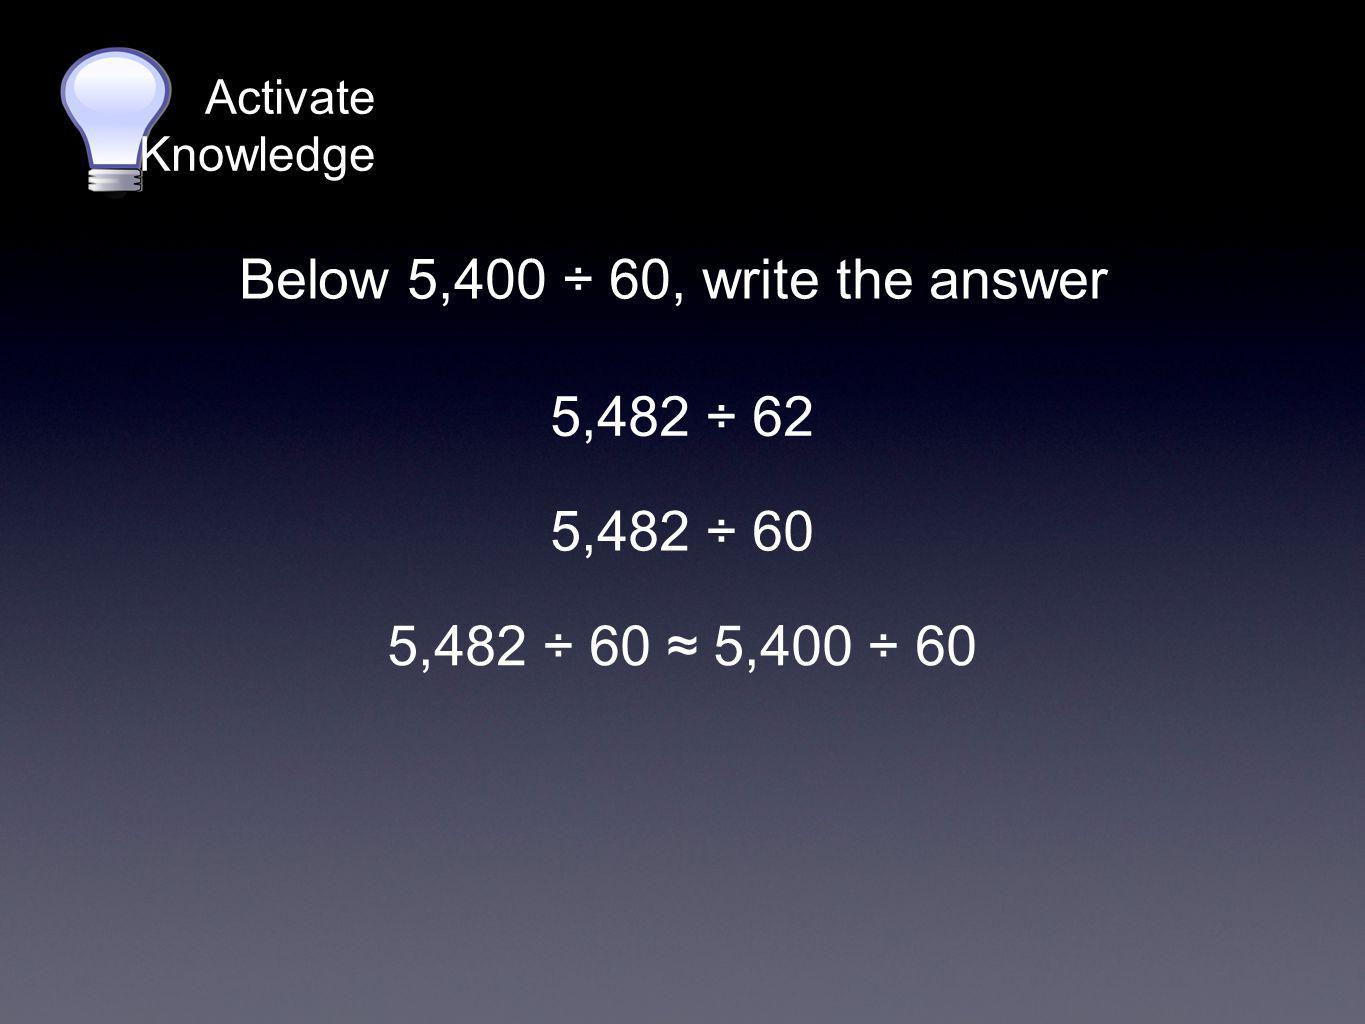 Below 5,400 ÷ 60, write the answer